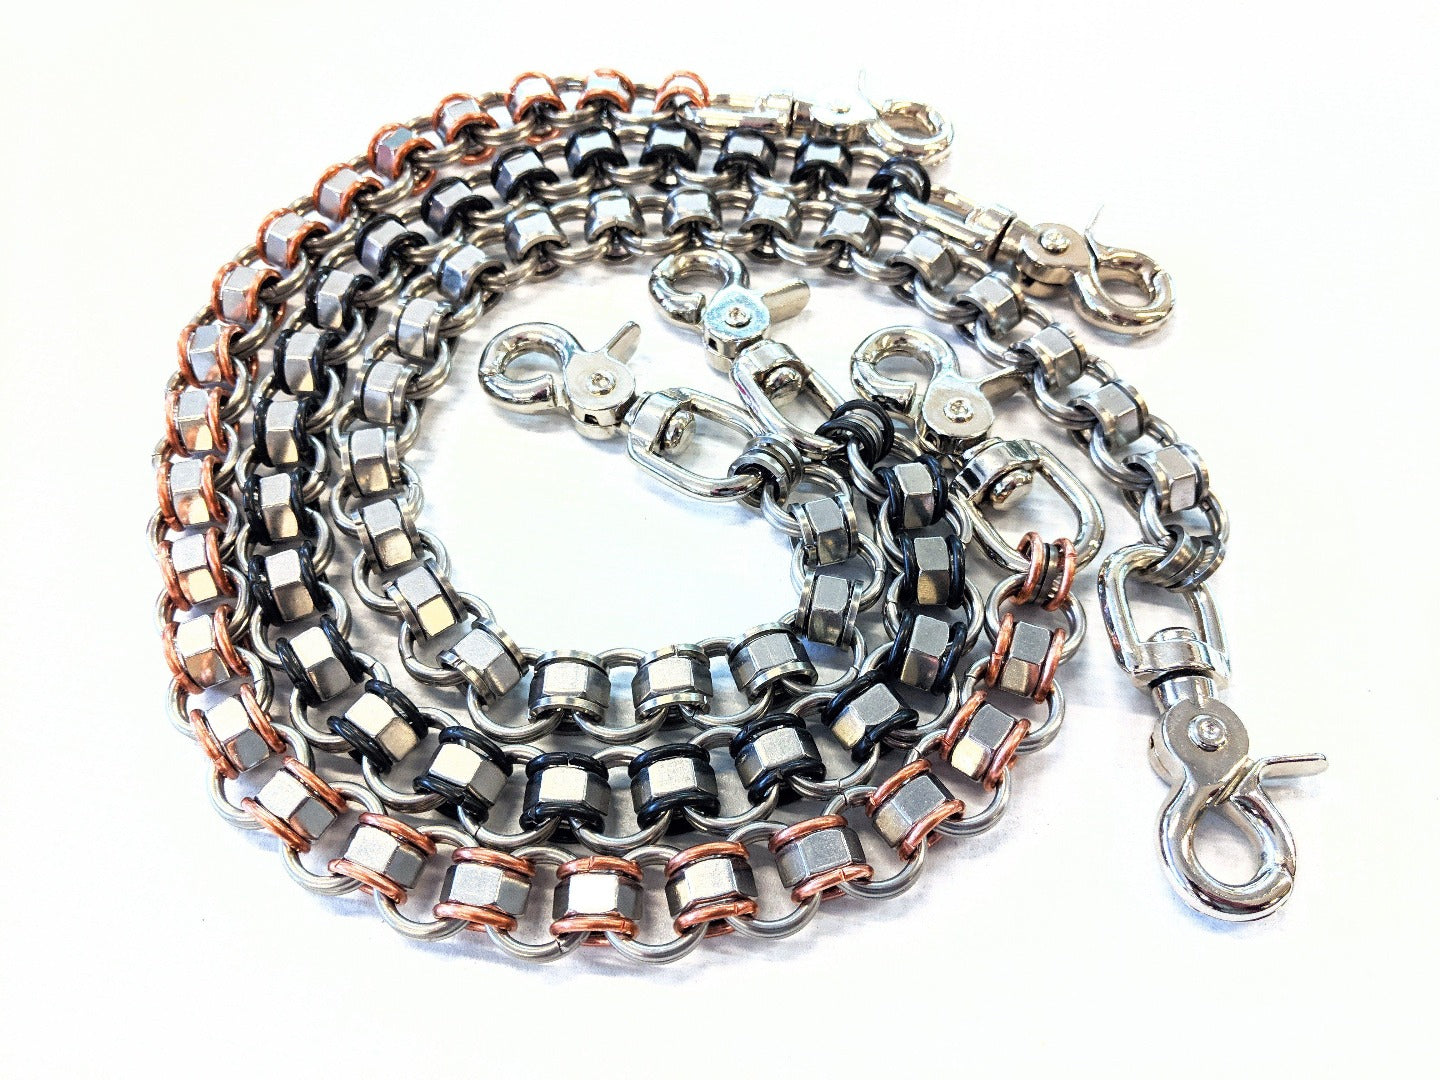 22 Inch Industry Chain Mail Wallet Chain